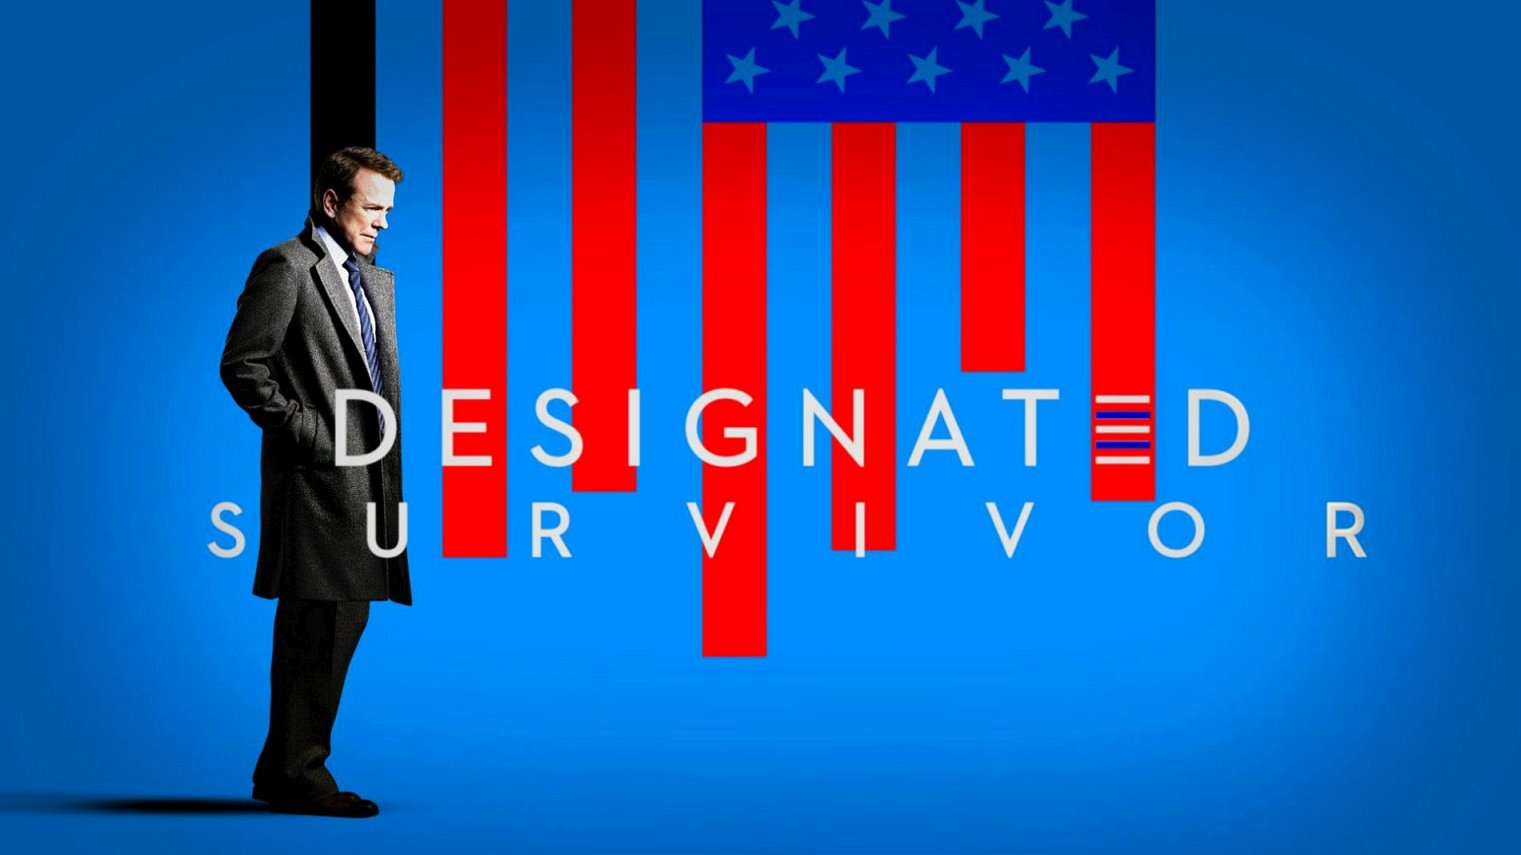 Designated Survivor season 2 episode 10 watch online